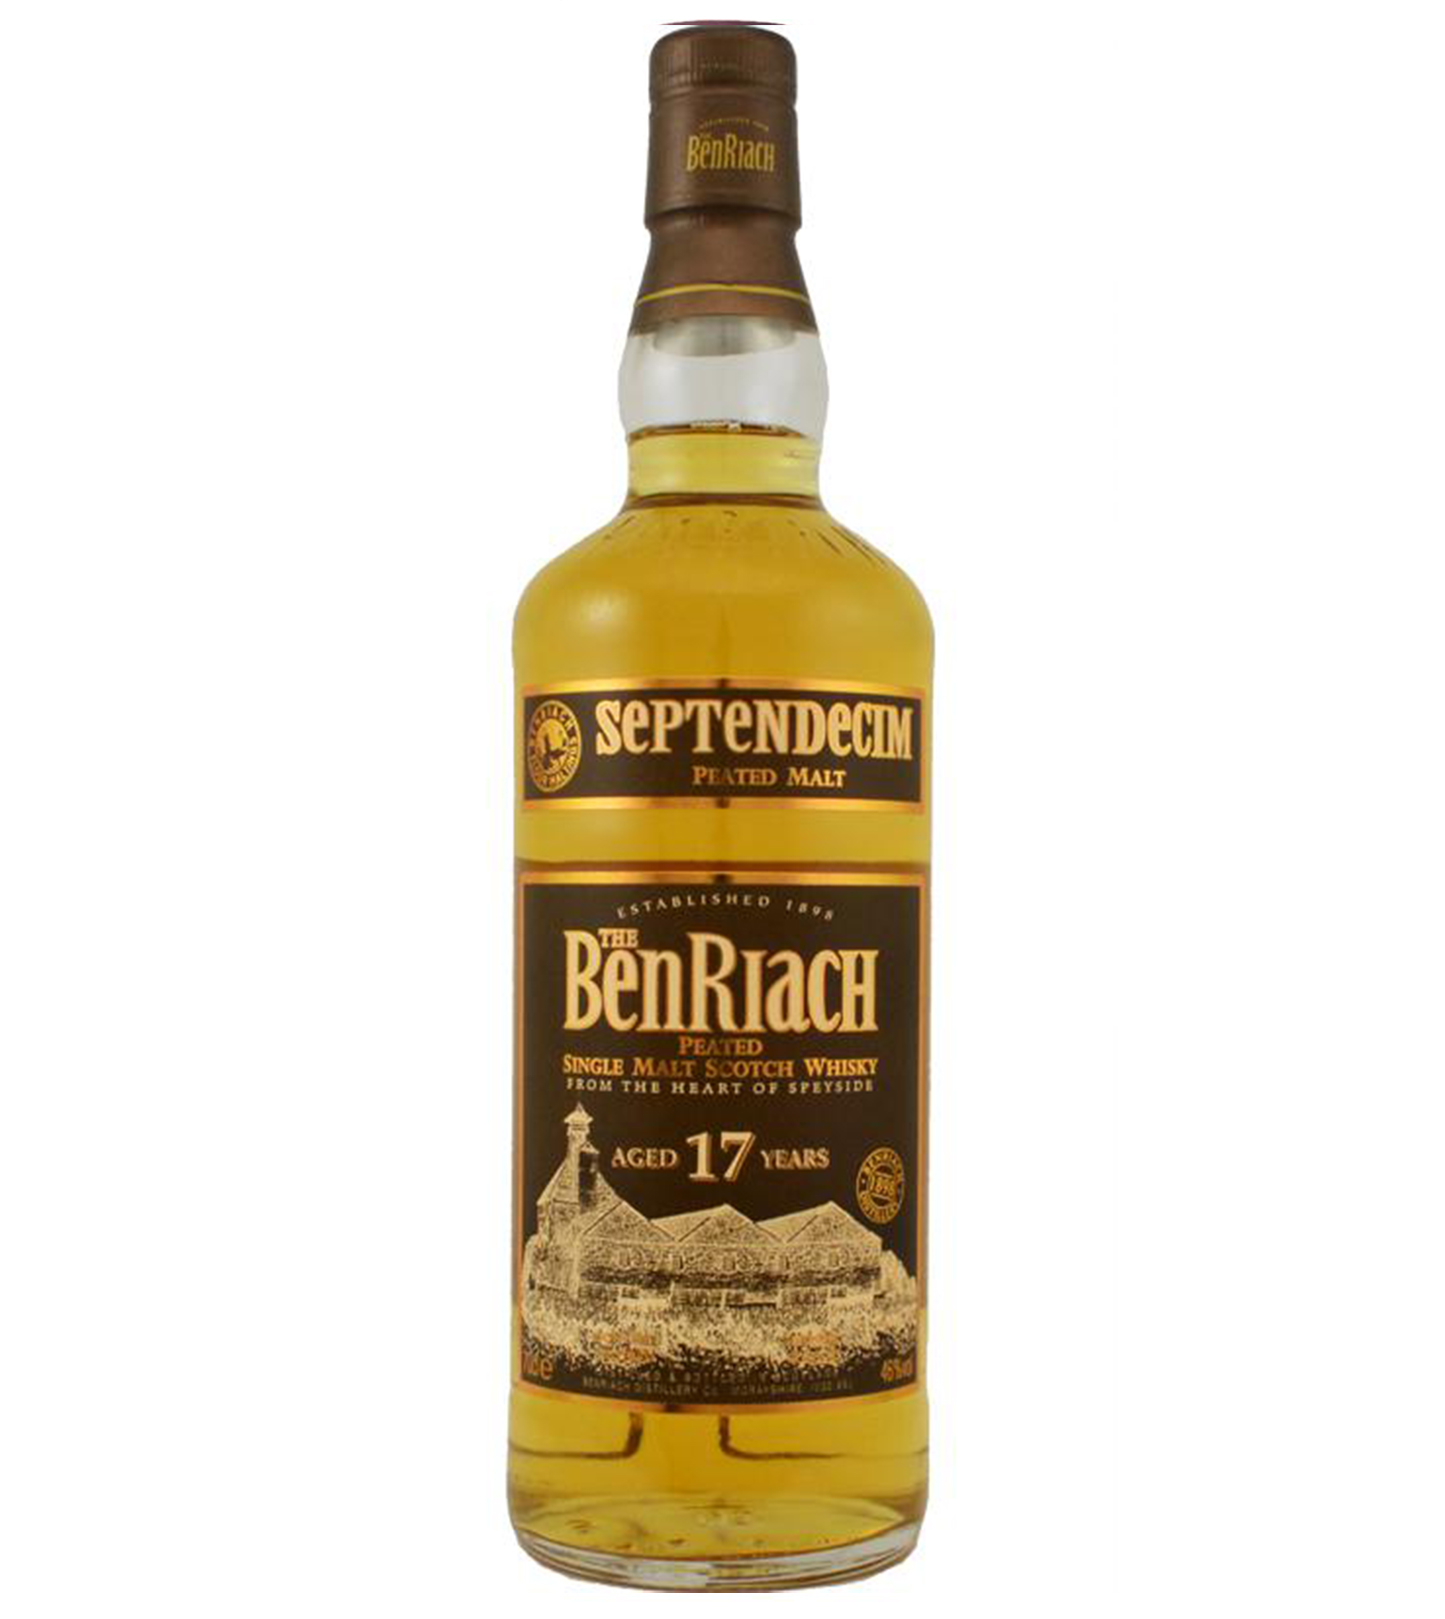 BenRiach 17 years – Septendecim